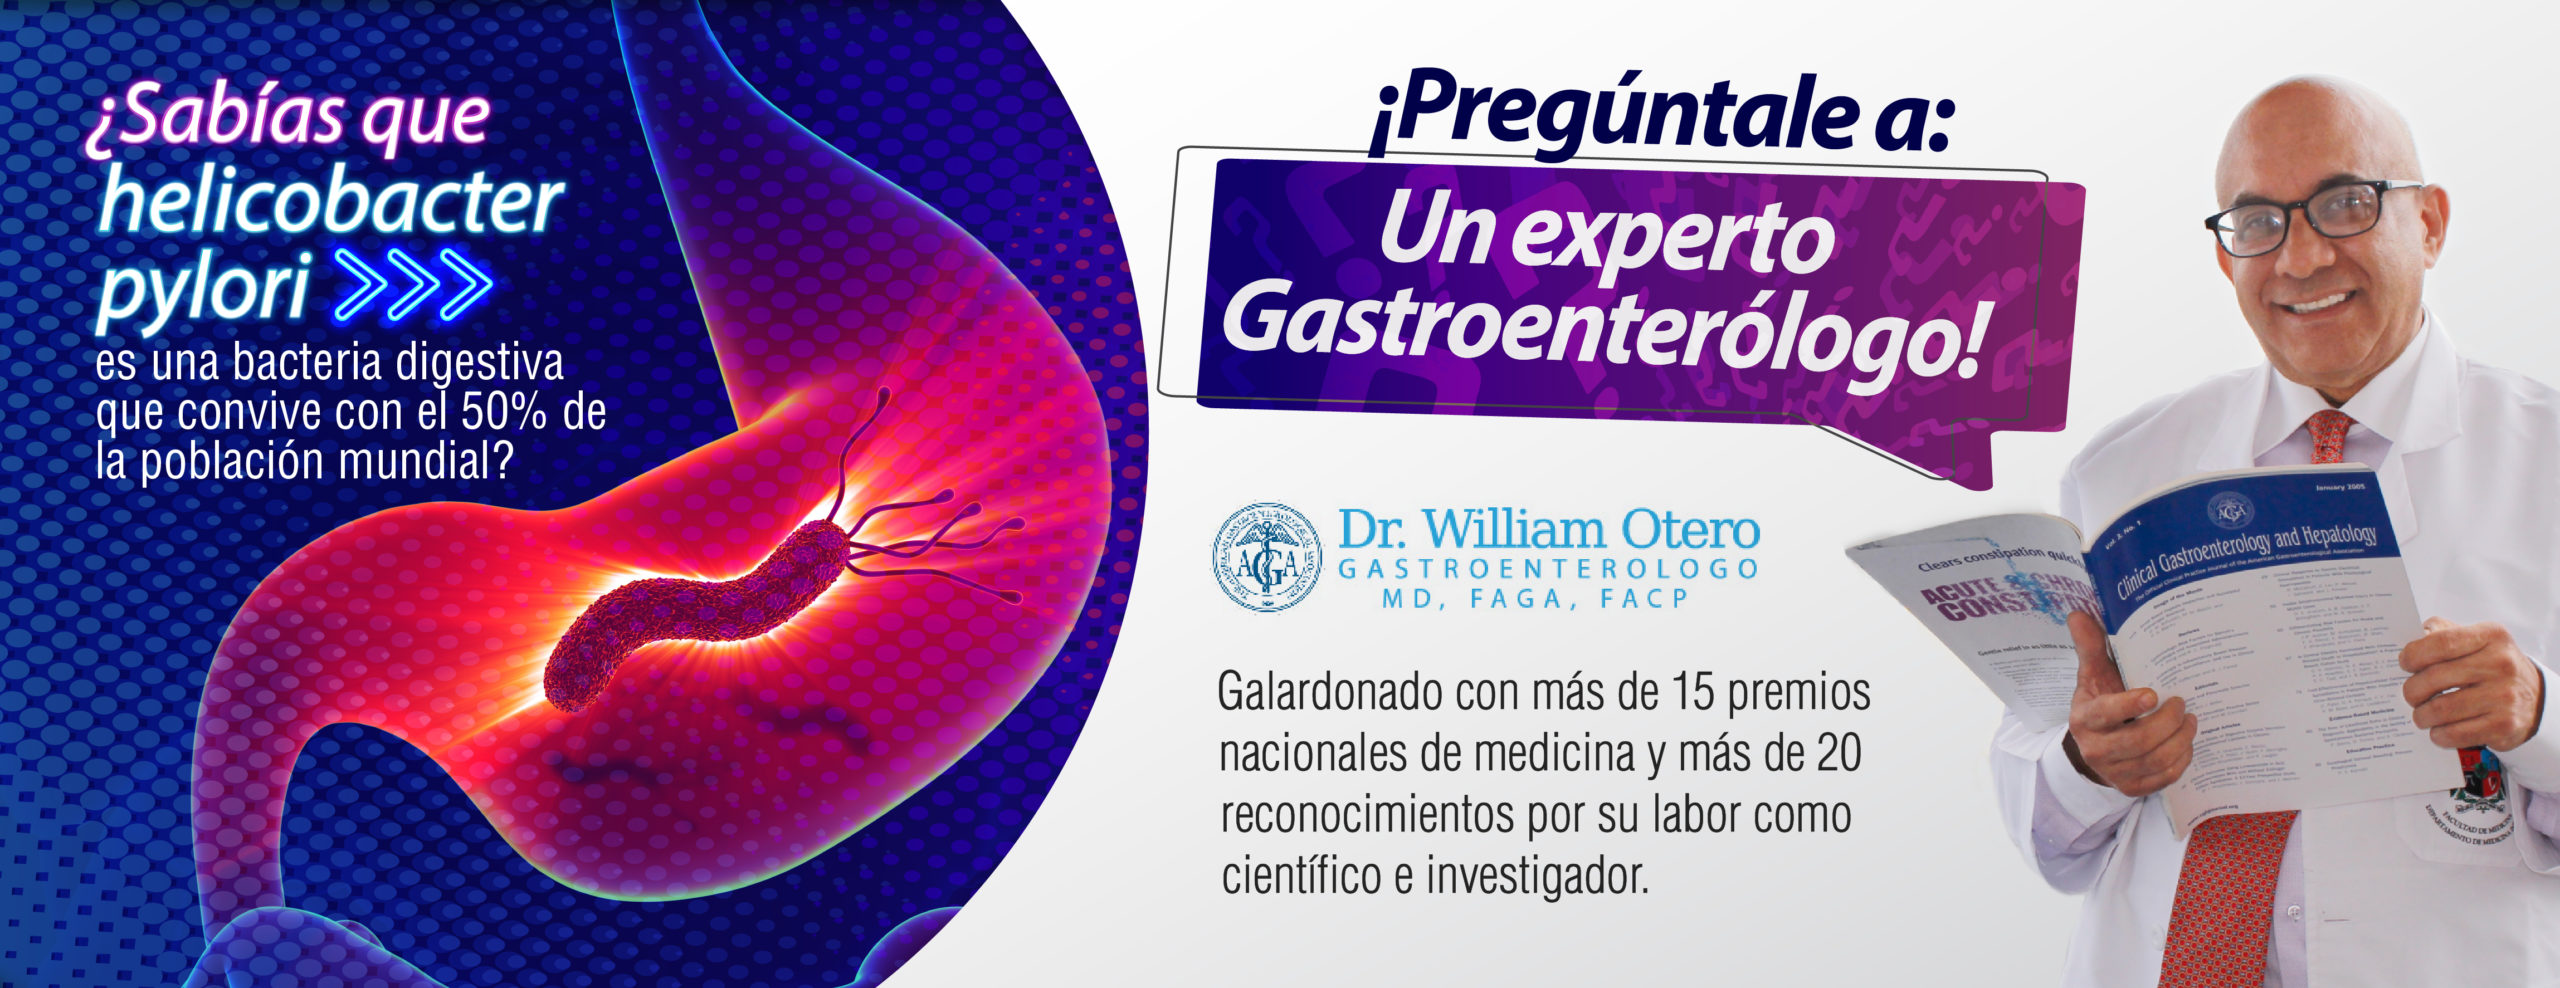 Pregúntale al Dr. William Otero (Video Respuesta)